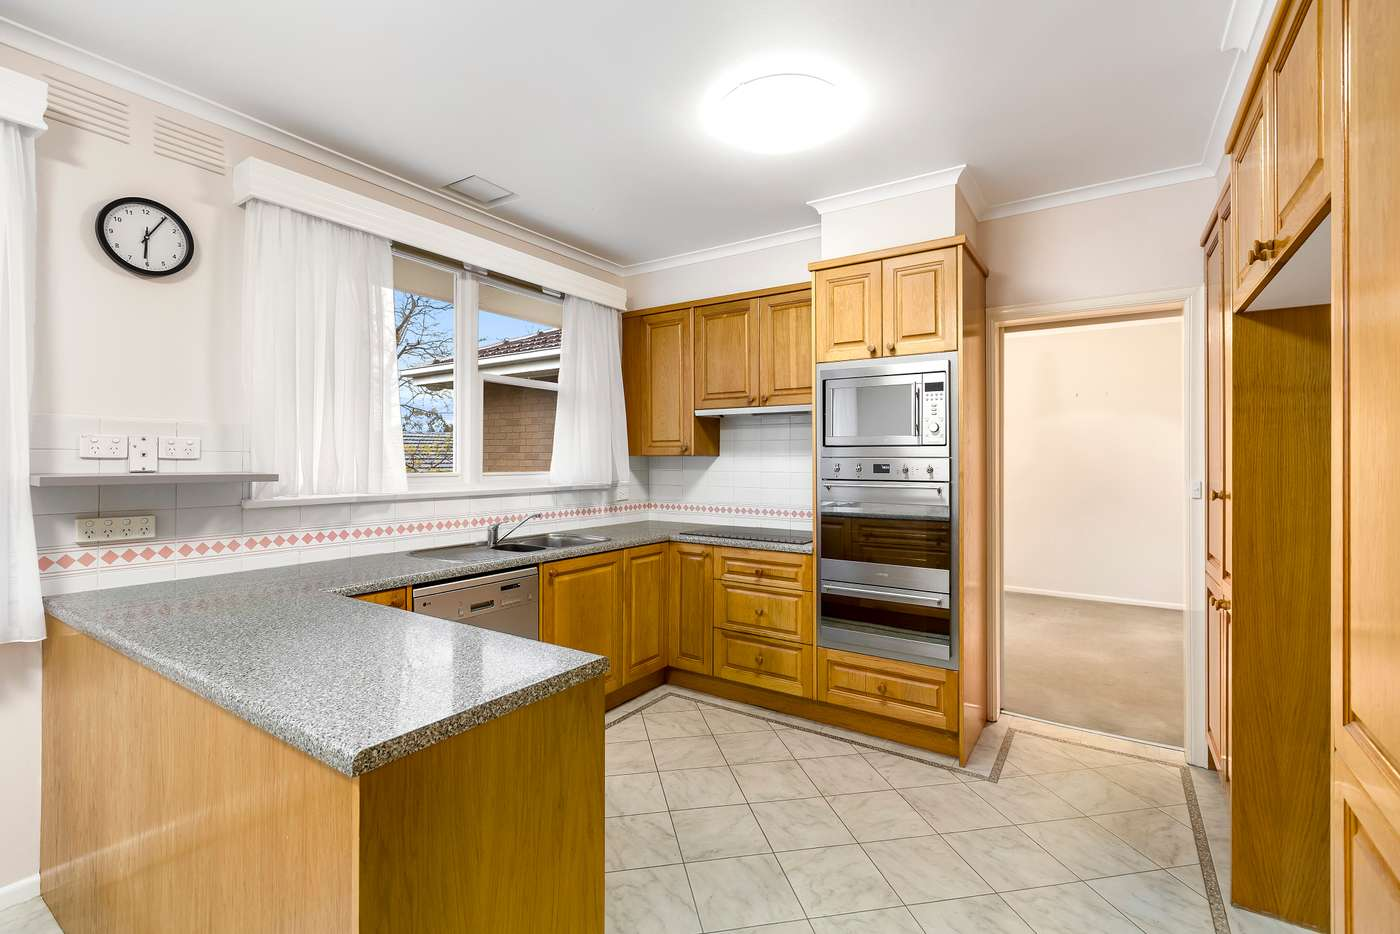 Fifth view of Homely house listing, 22 Central Avenue, Balwyn North VIC 3104